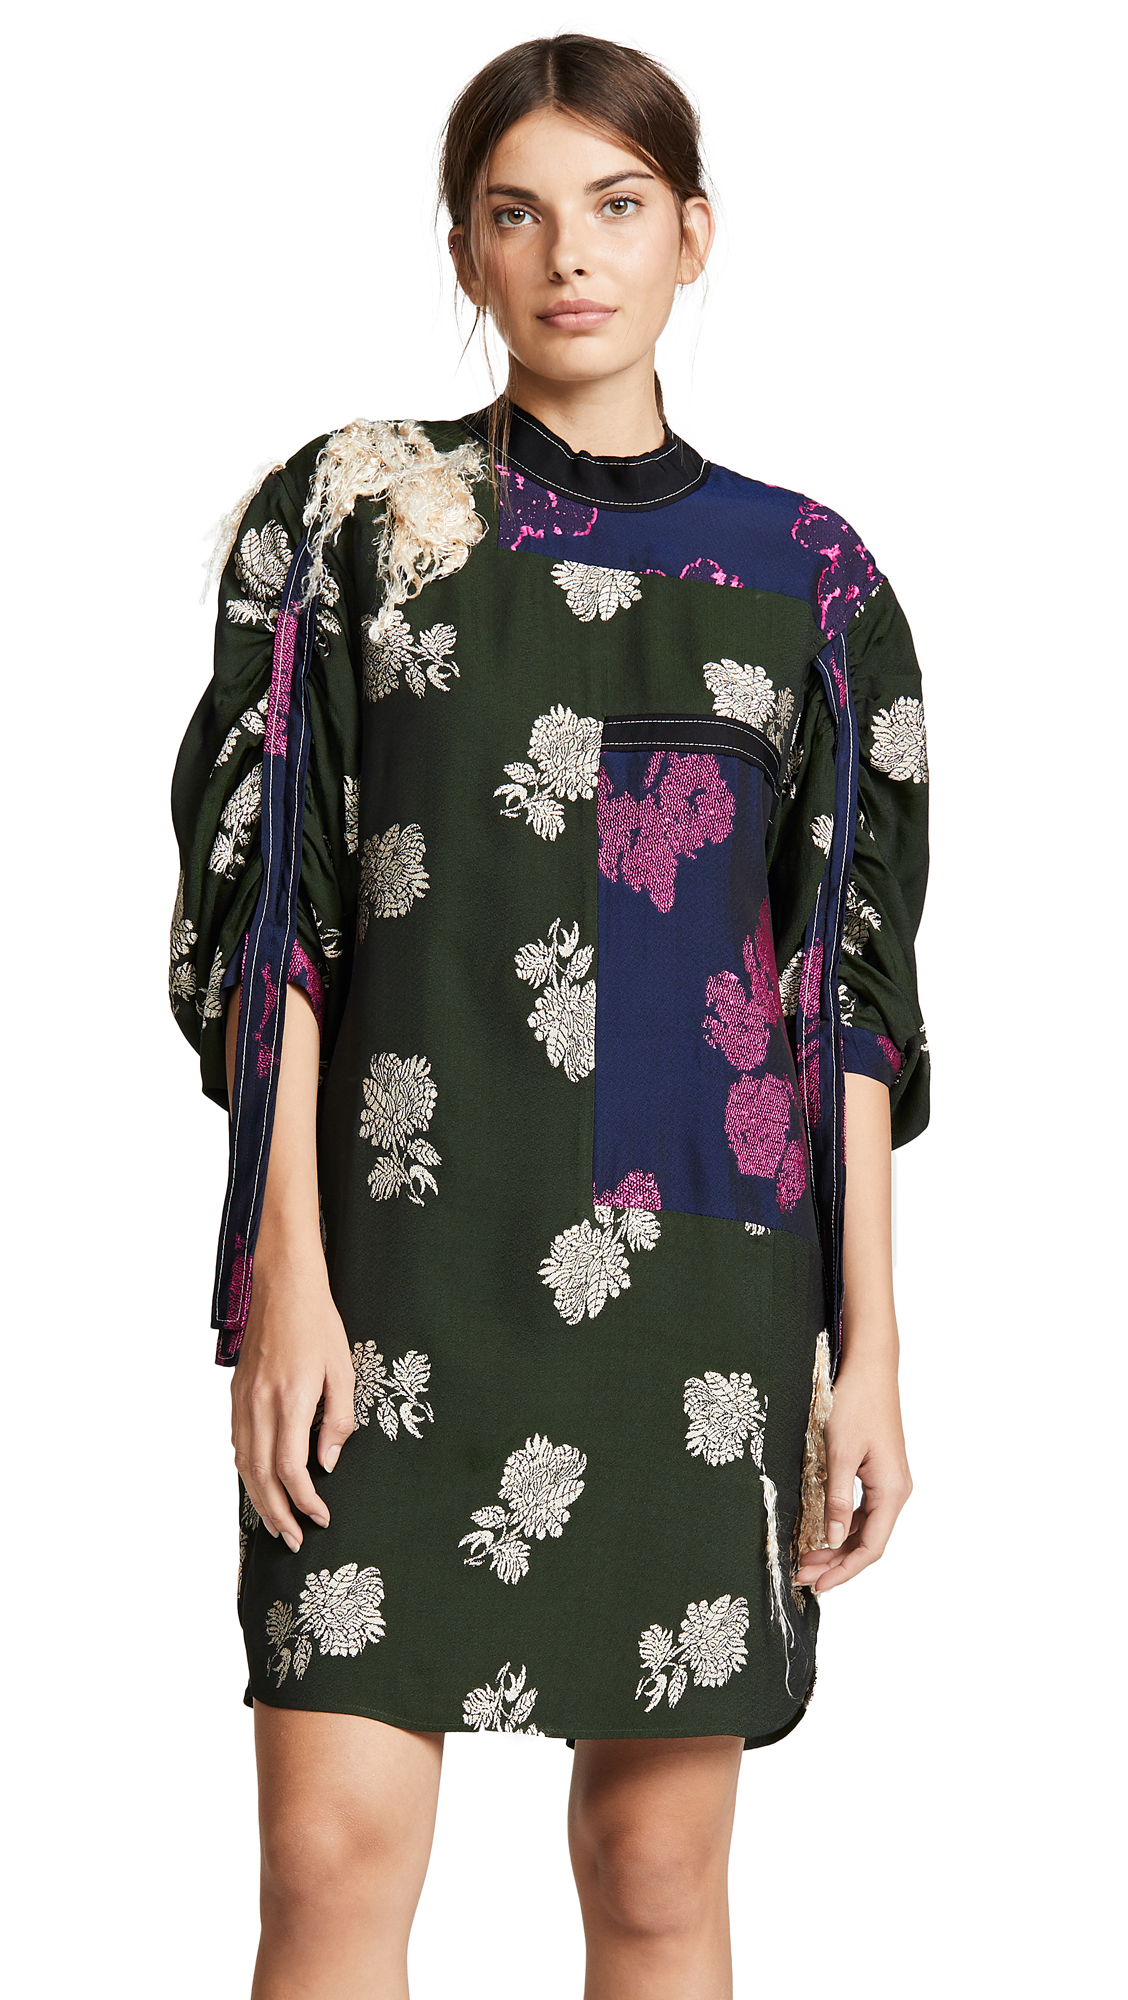 3.1 Phillip Lim Gathered Sleeve Dress - Navy/Fuchsia